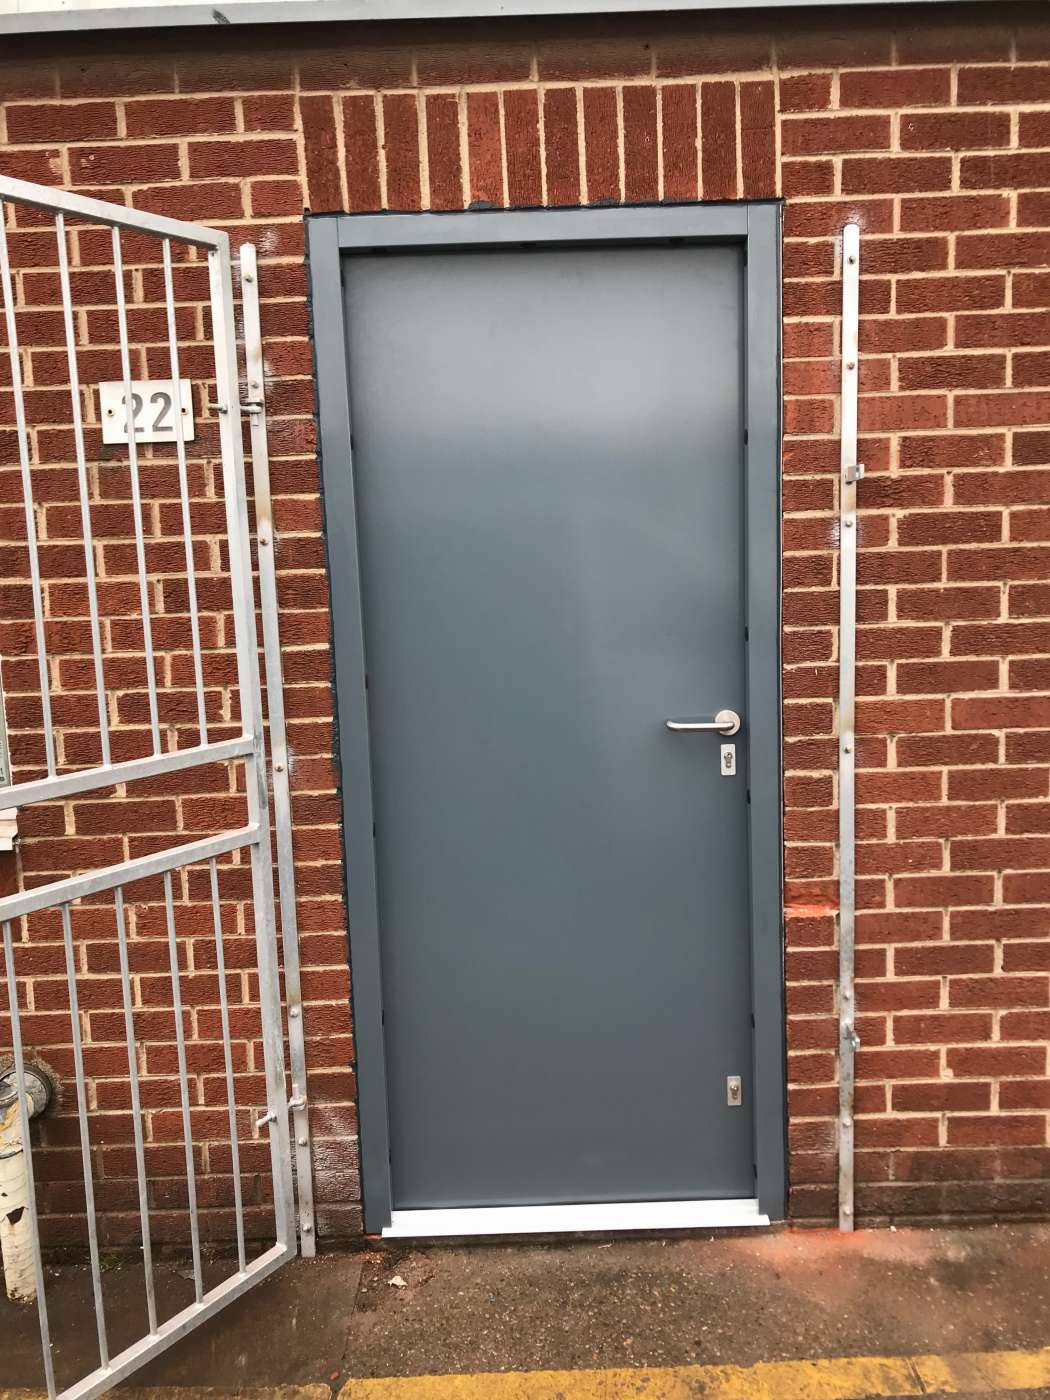 Very Busy Week So Far! 6 New High Level Steel Security Doors Fitted.